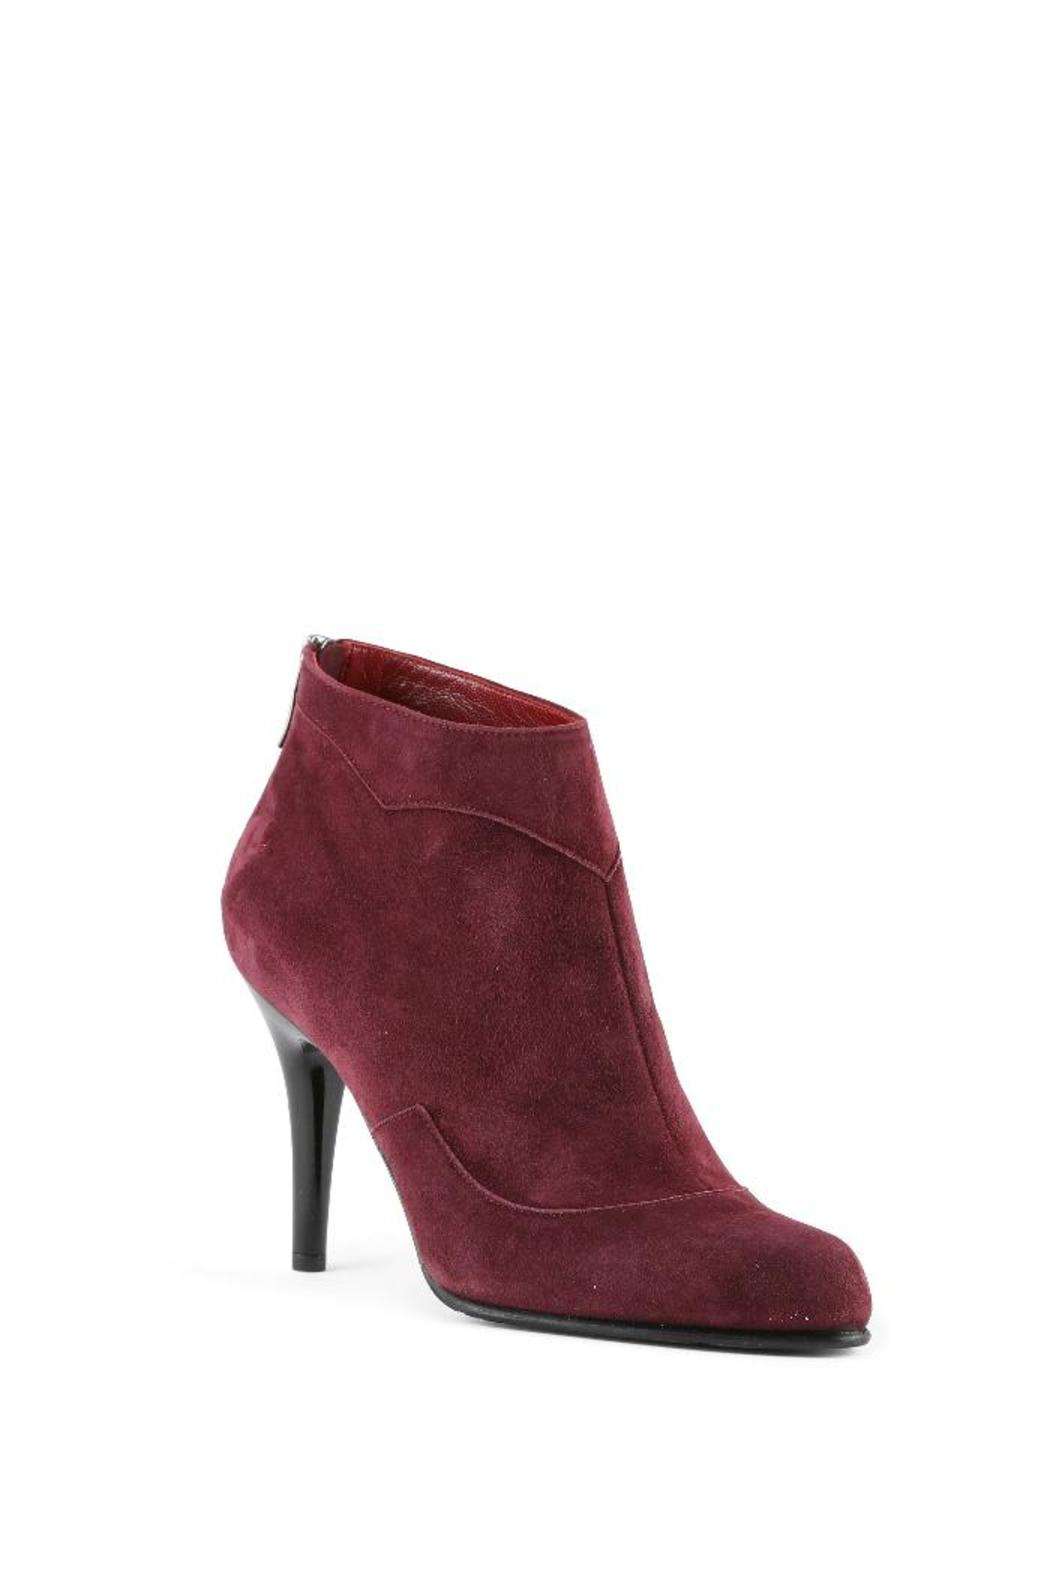 Amanda Jayne Burgundy Suede Bootie From Monmouthshire By Amanda Jayne Shoes Shoptiques